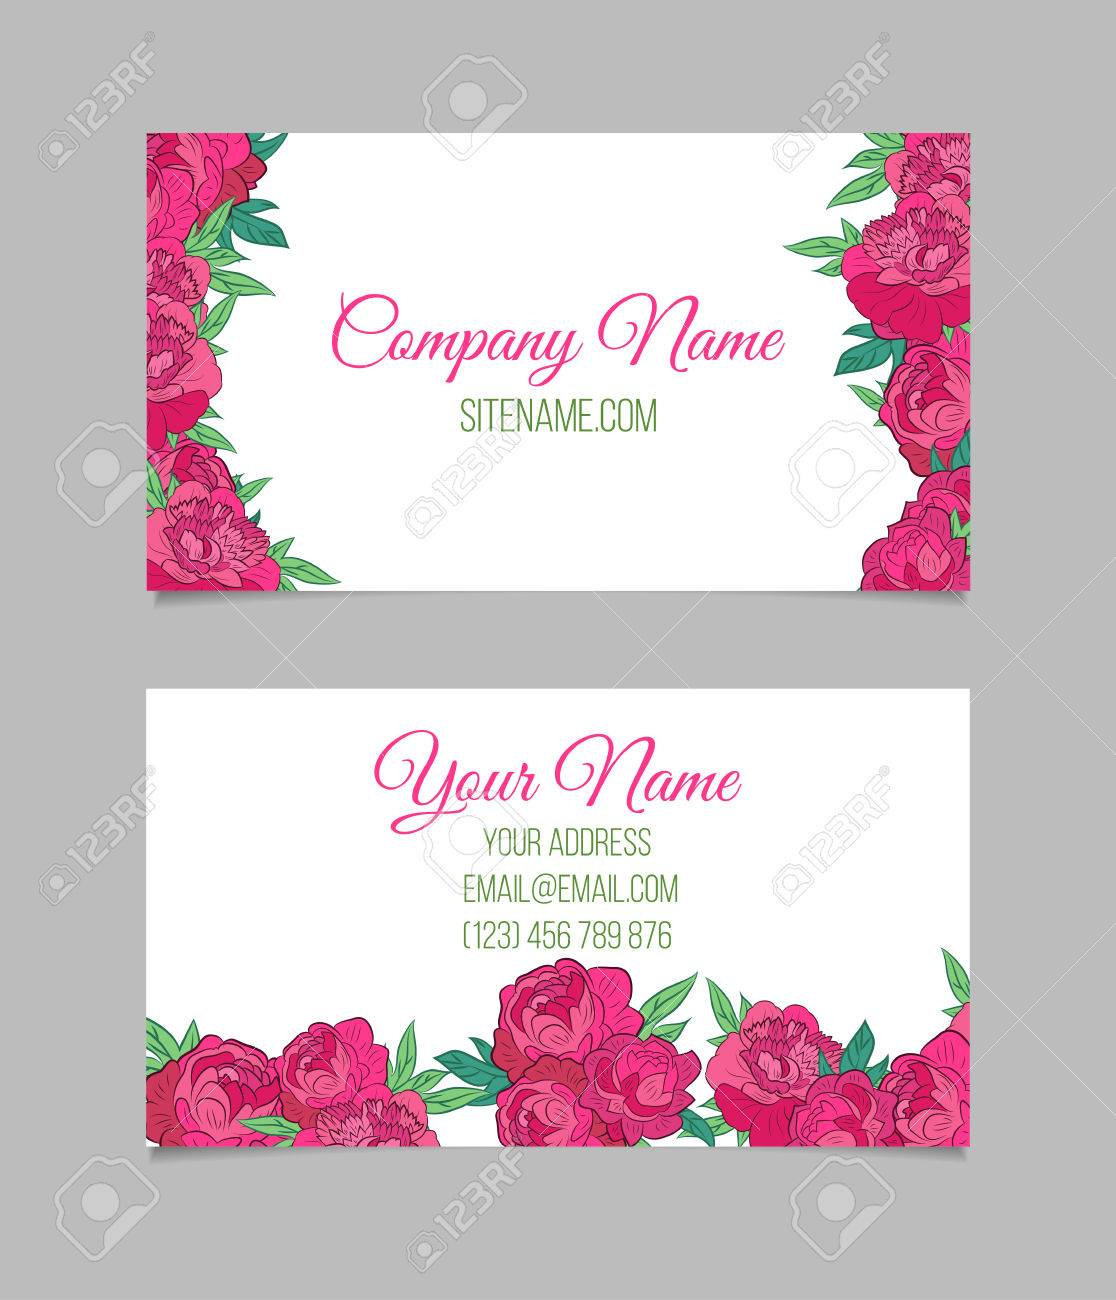 Double sided floral business card template with pink peonies double sided floral business card template with pink peonies on white background stock vector cheaphphosting Image collections